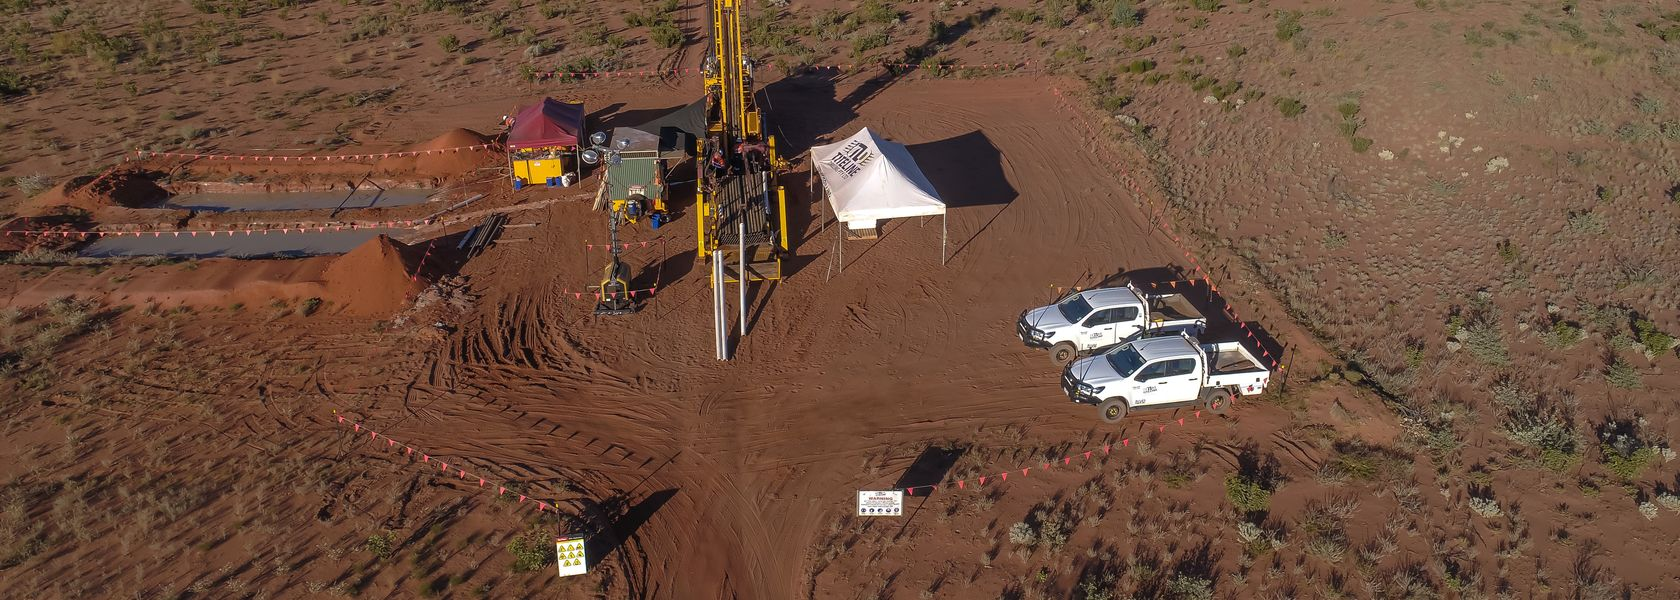 Rio Tinto's thirst for copper grows - Mining Journal